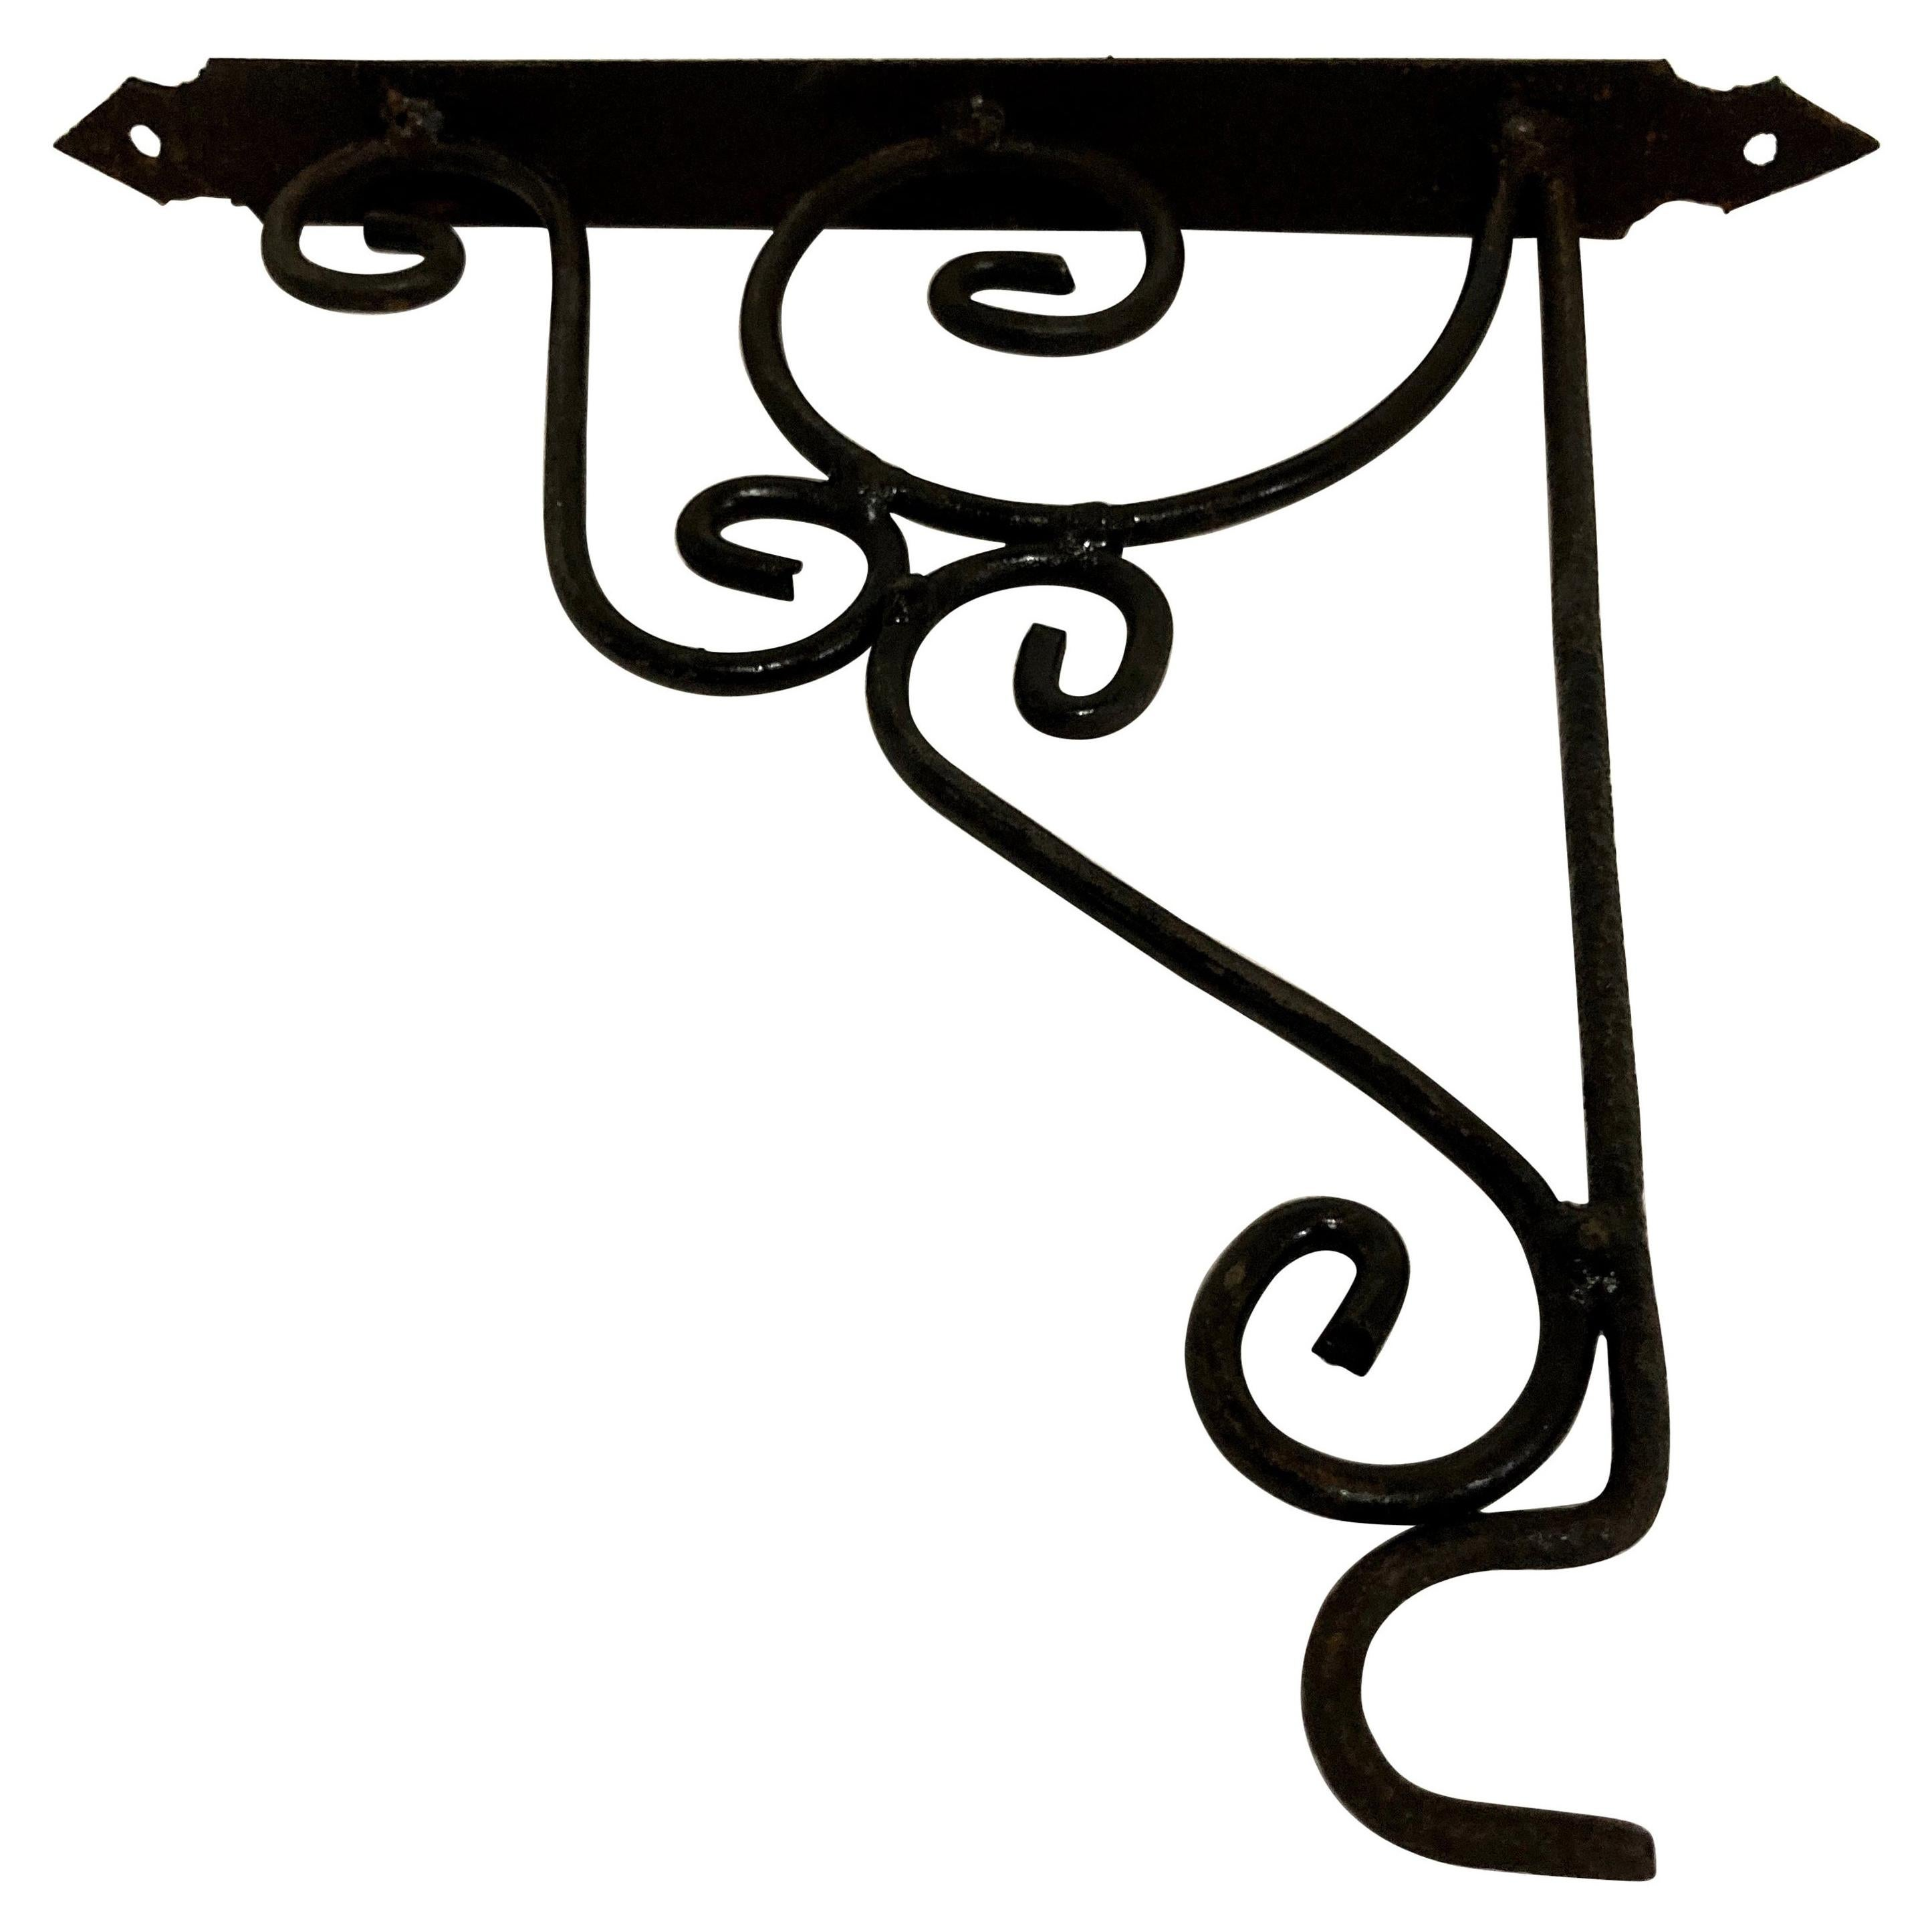 Iron Scrolling Wall Mounted Bracket for Lanterns or Signs